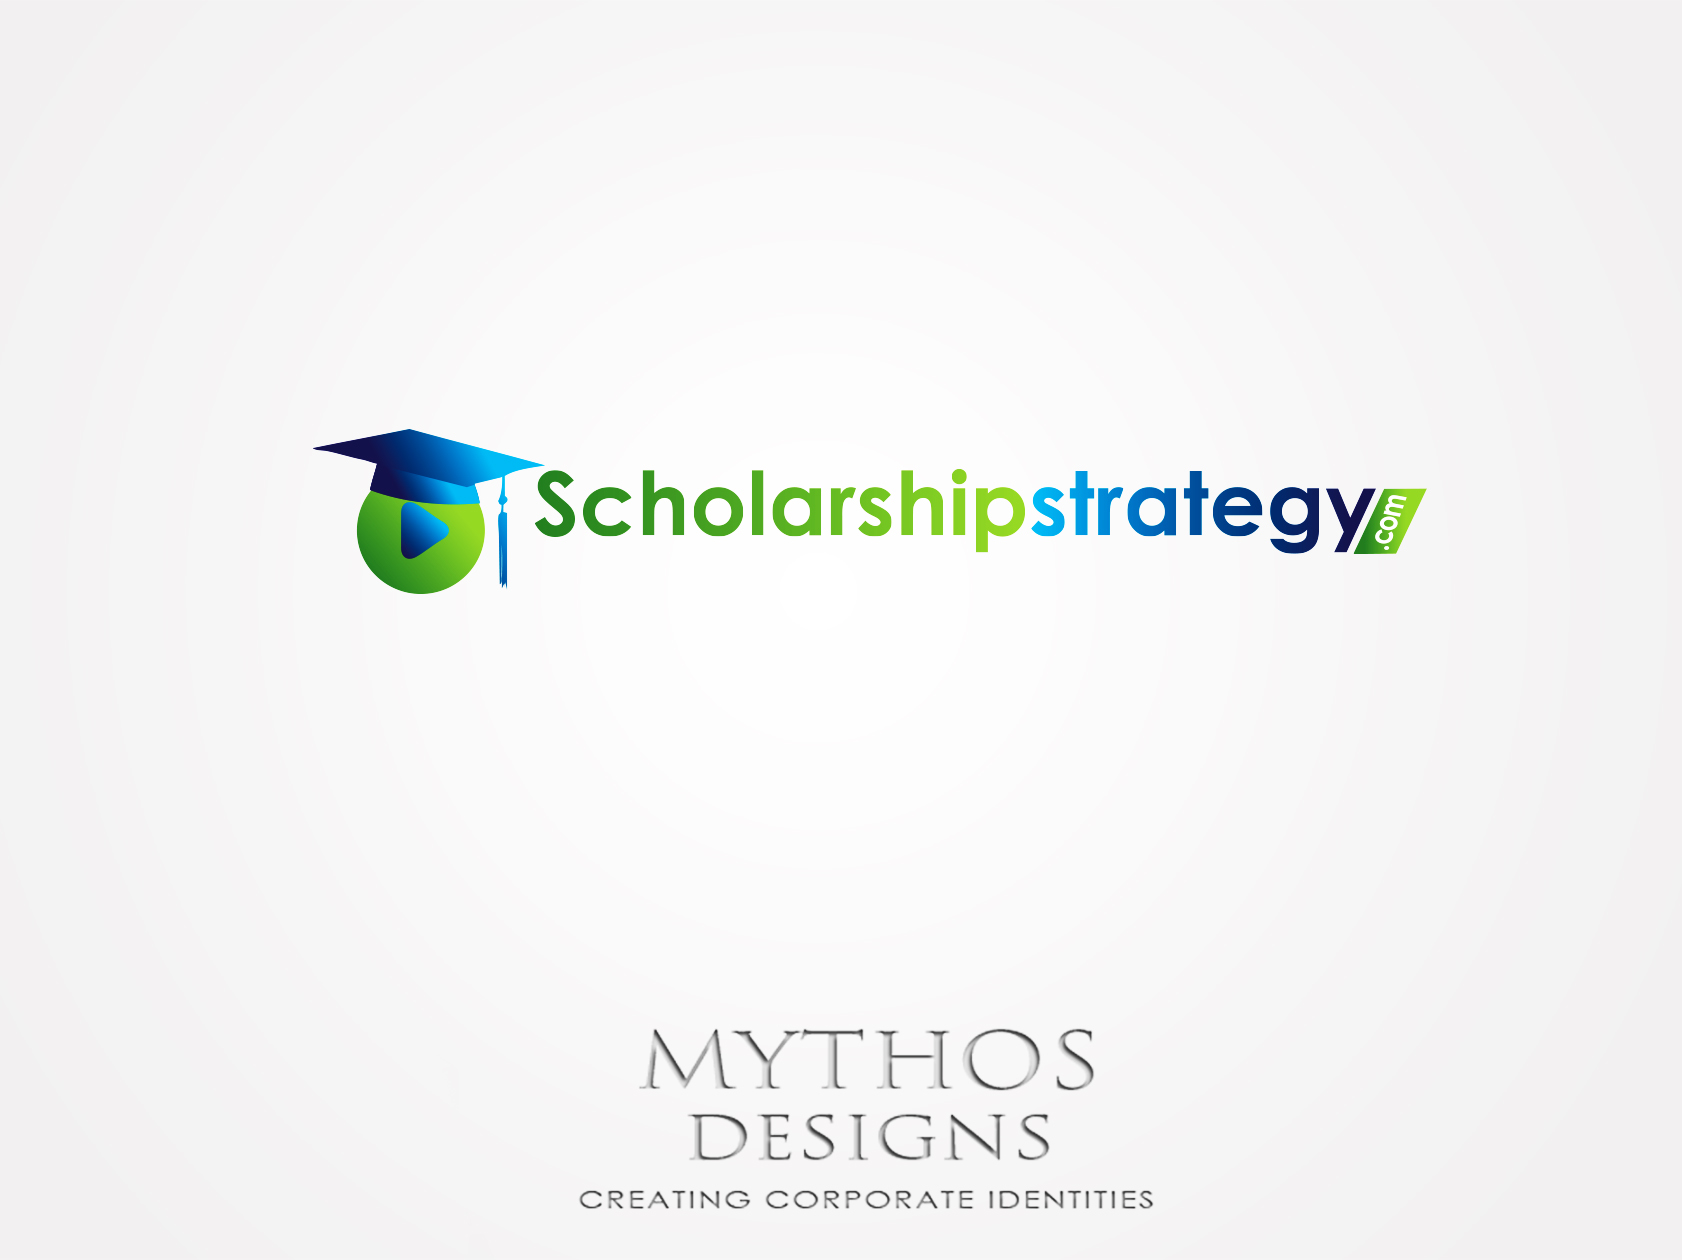 Logo Design by Mythos Designs - Entry No. 57 in the Logo Design Contest Captivating Logo Design for Scholarshipstrategy.com.